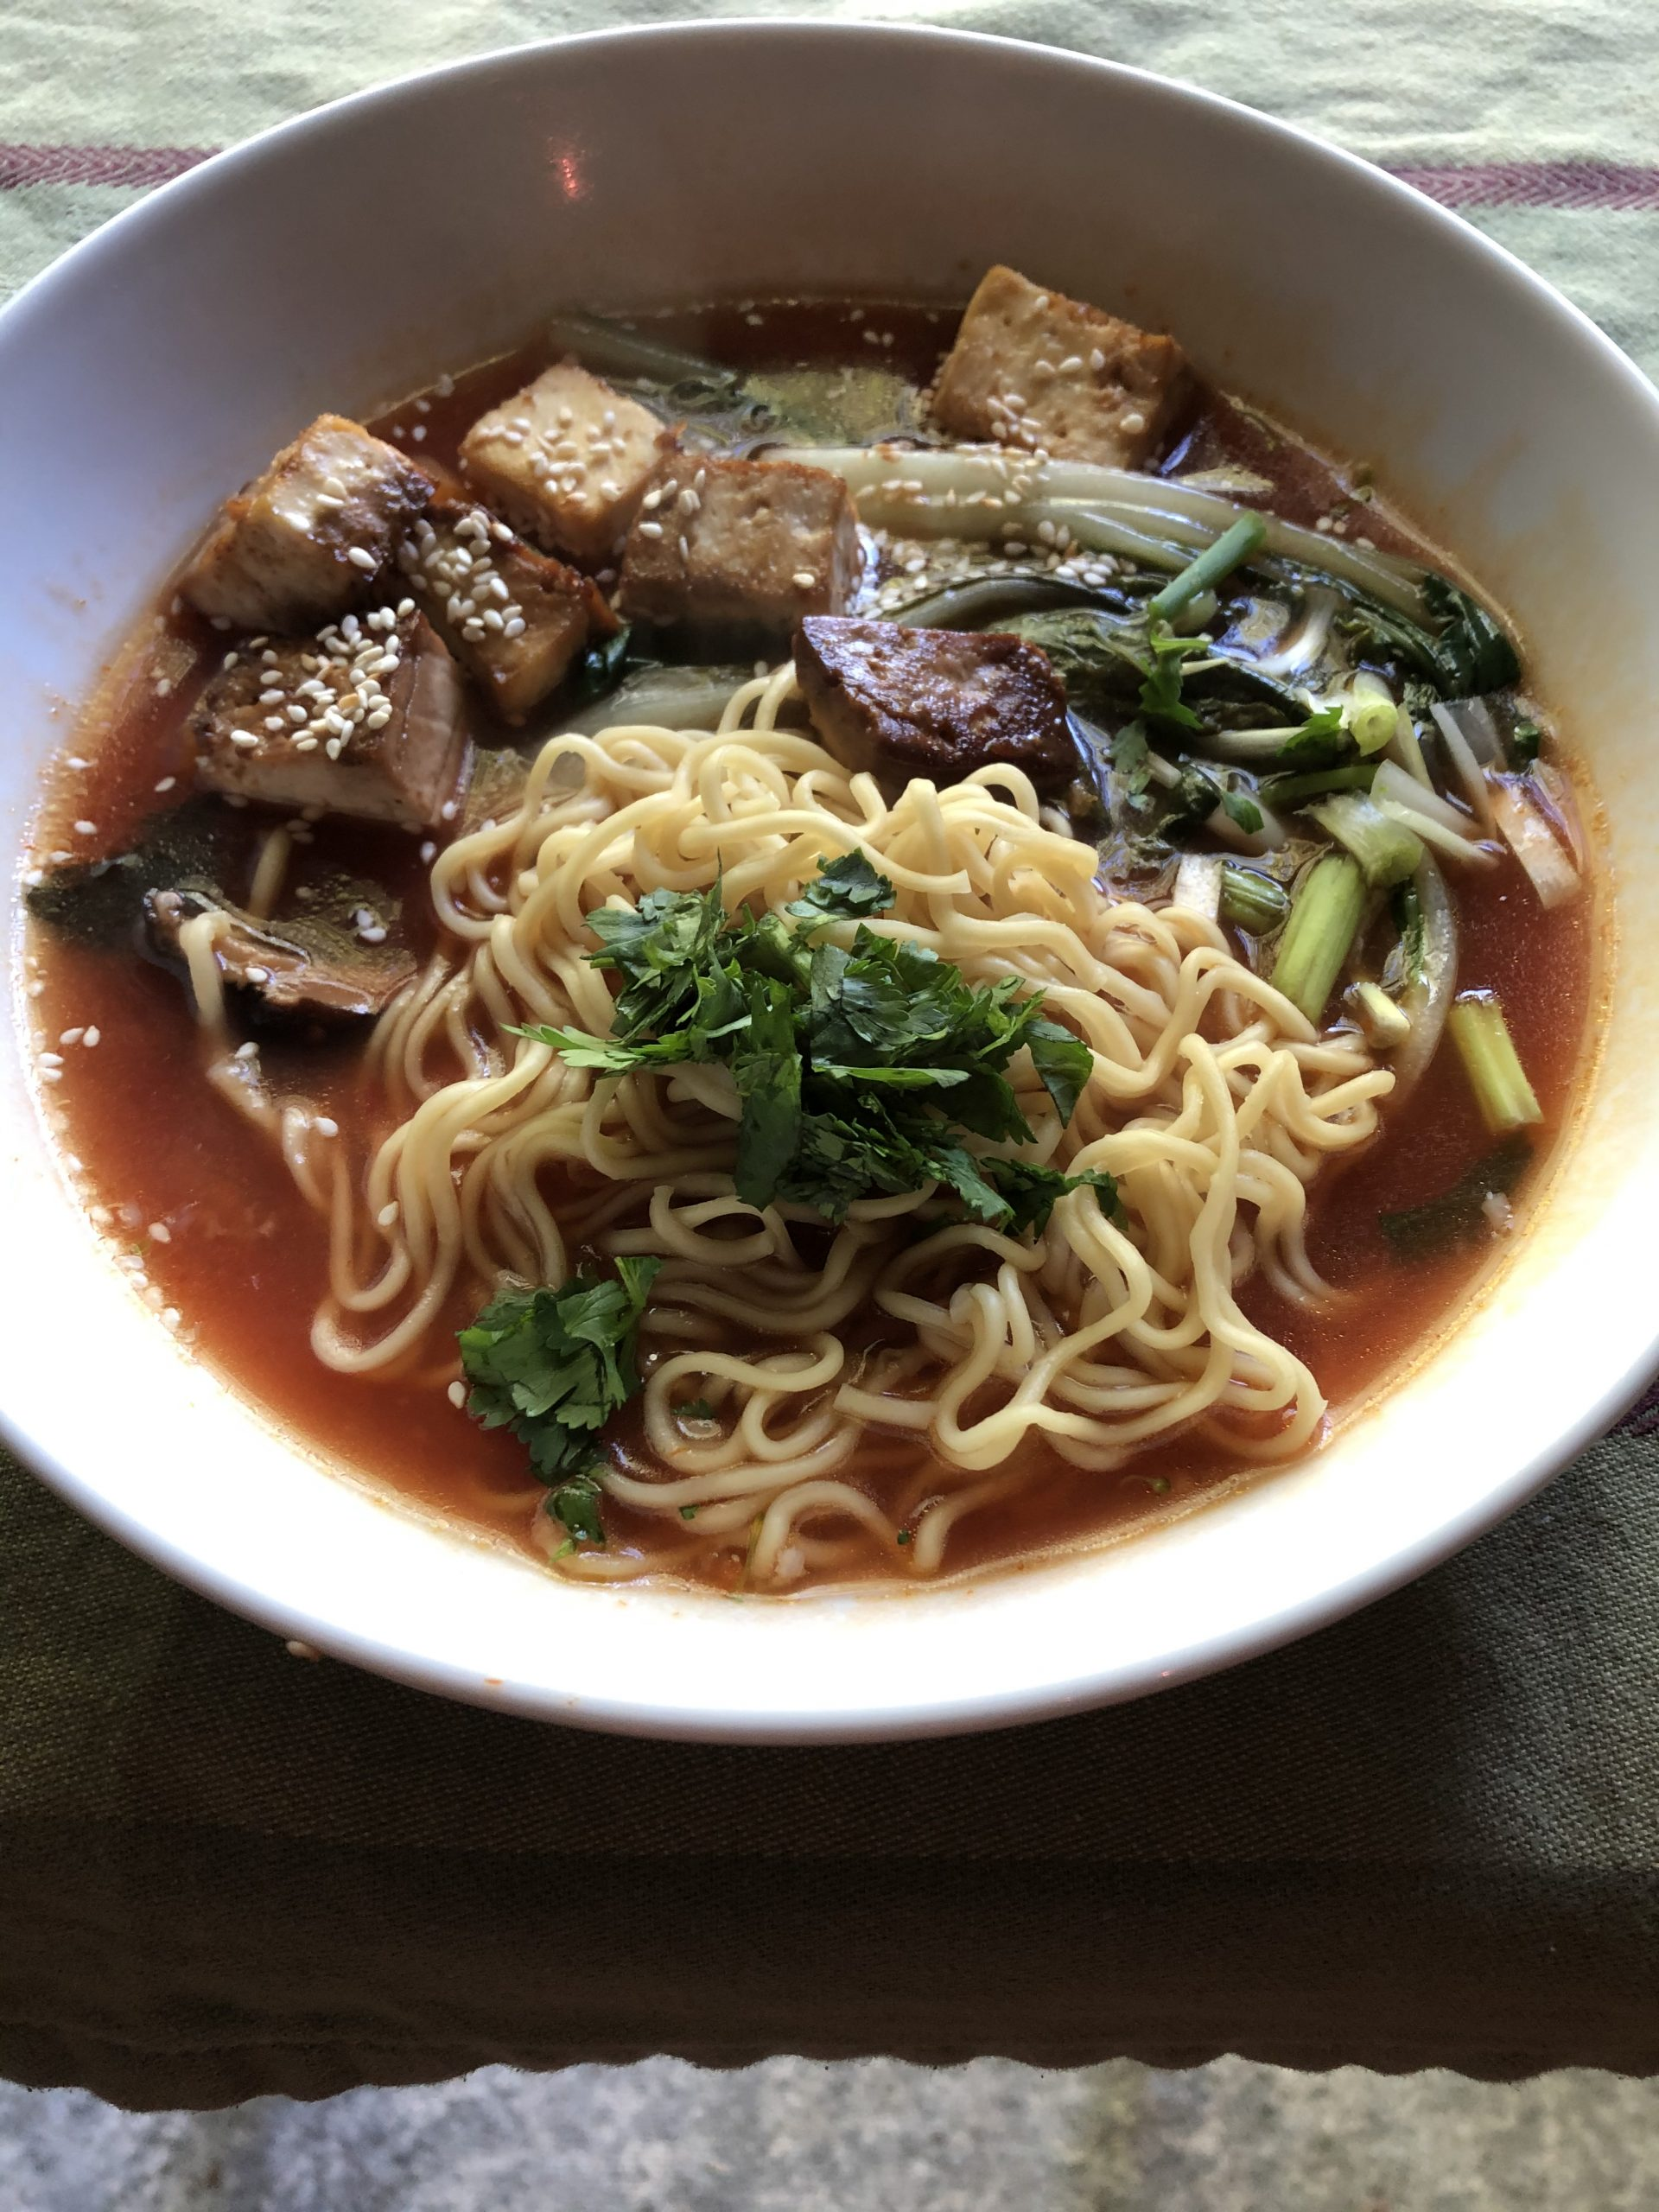 Noodles, tofu, vegetables and tomato broth ramen